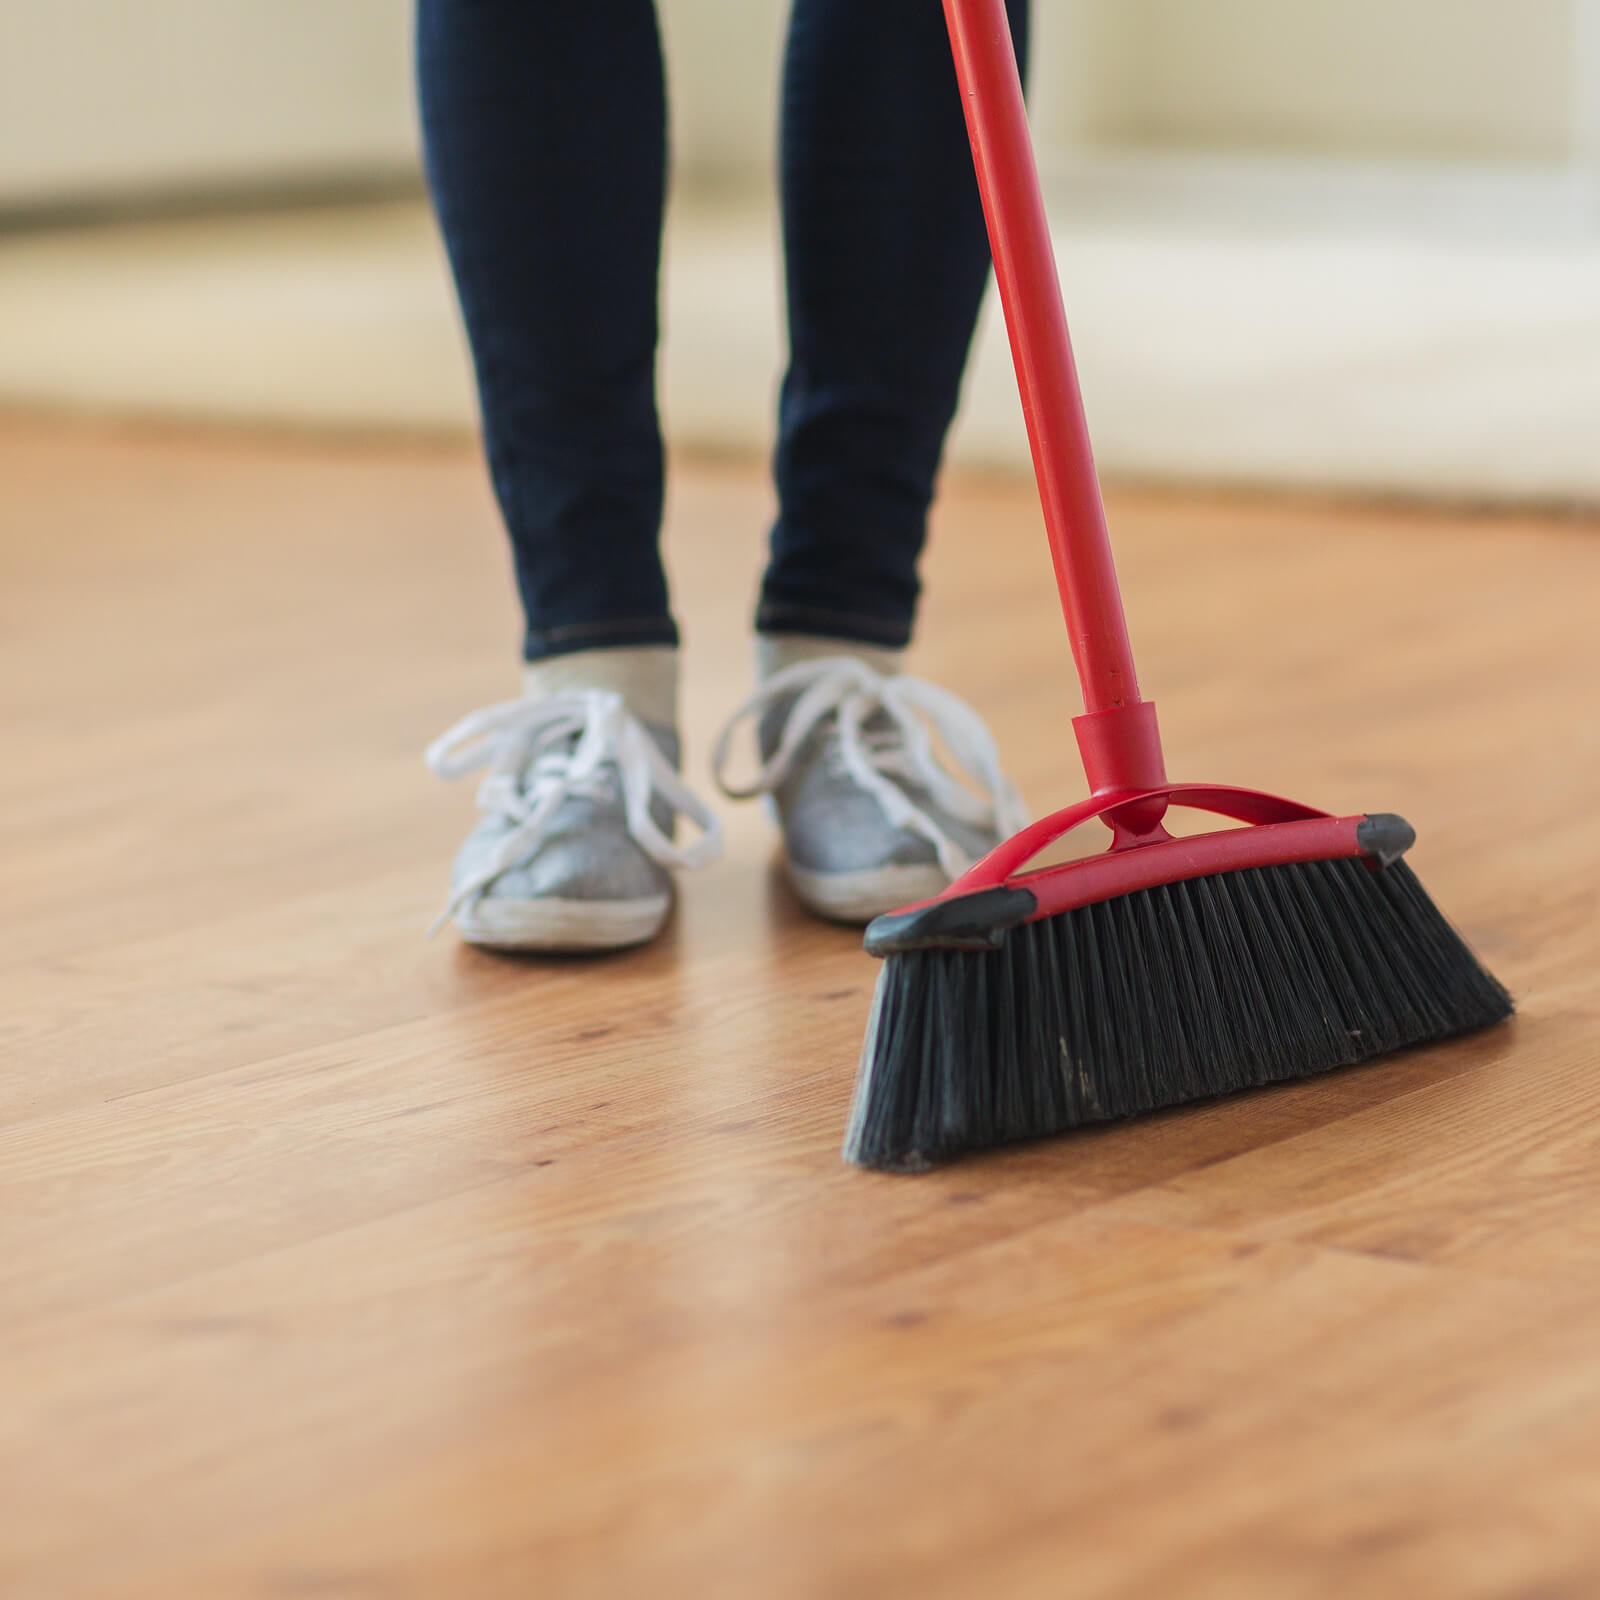 Laminate cleaning | Budget Flooring, Inc.